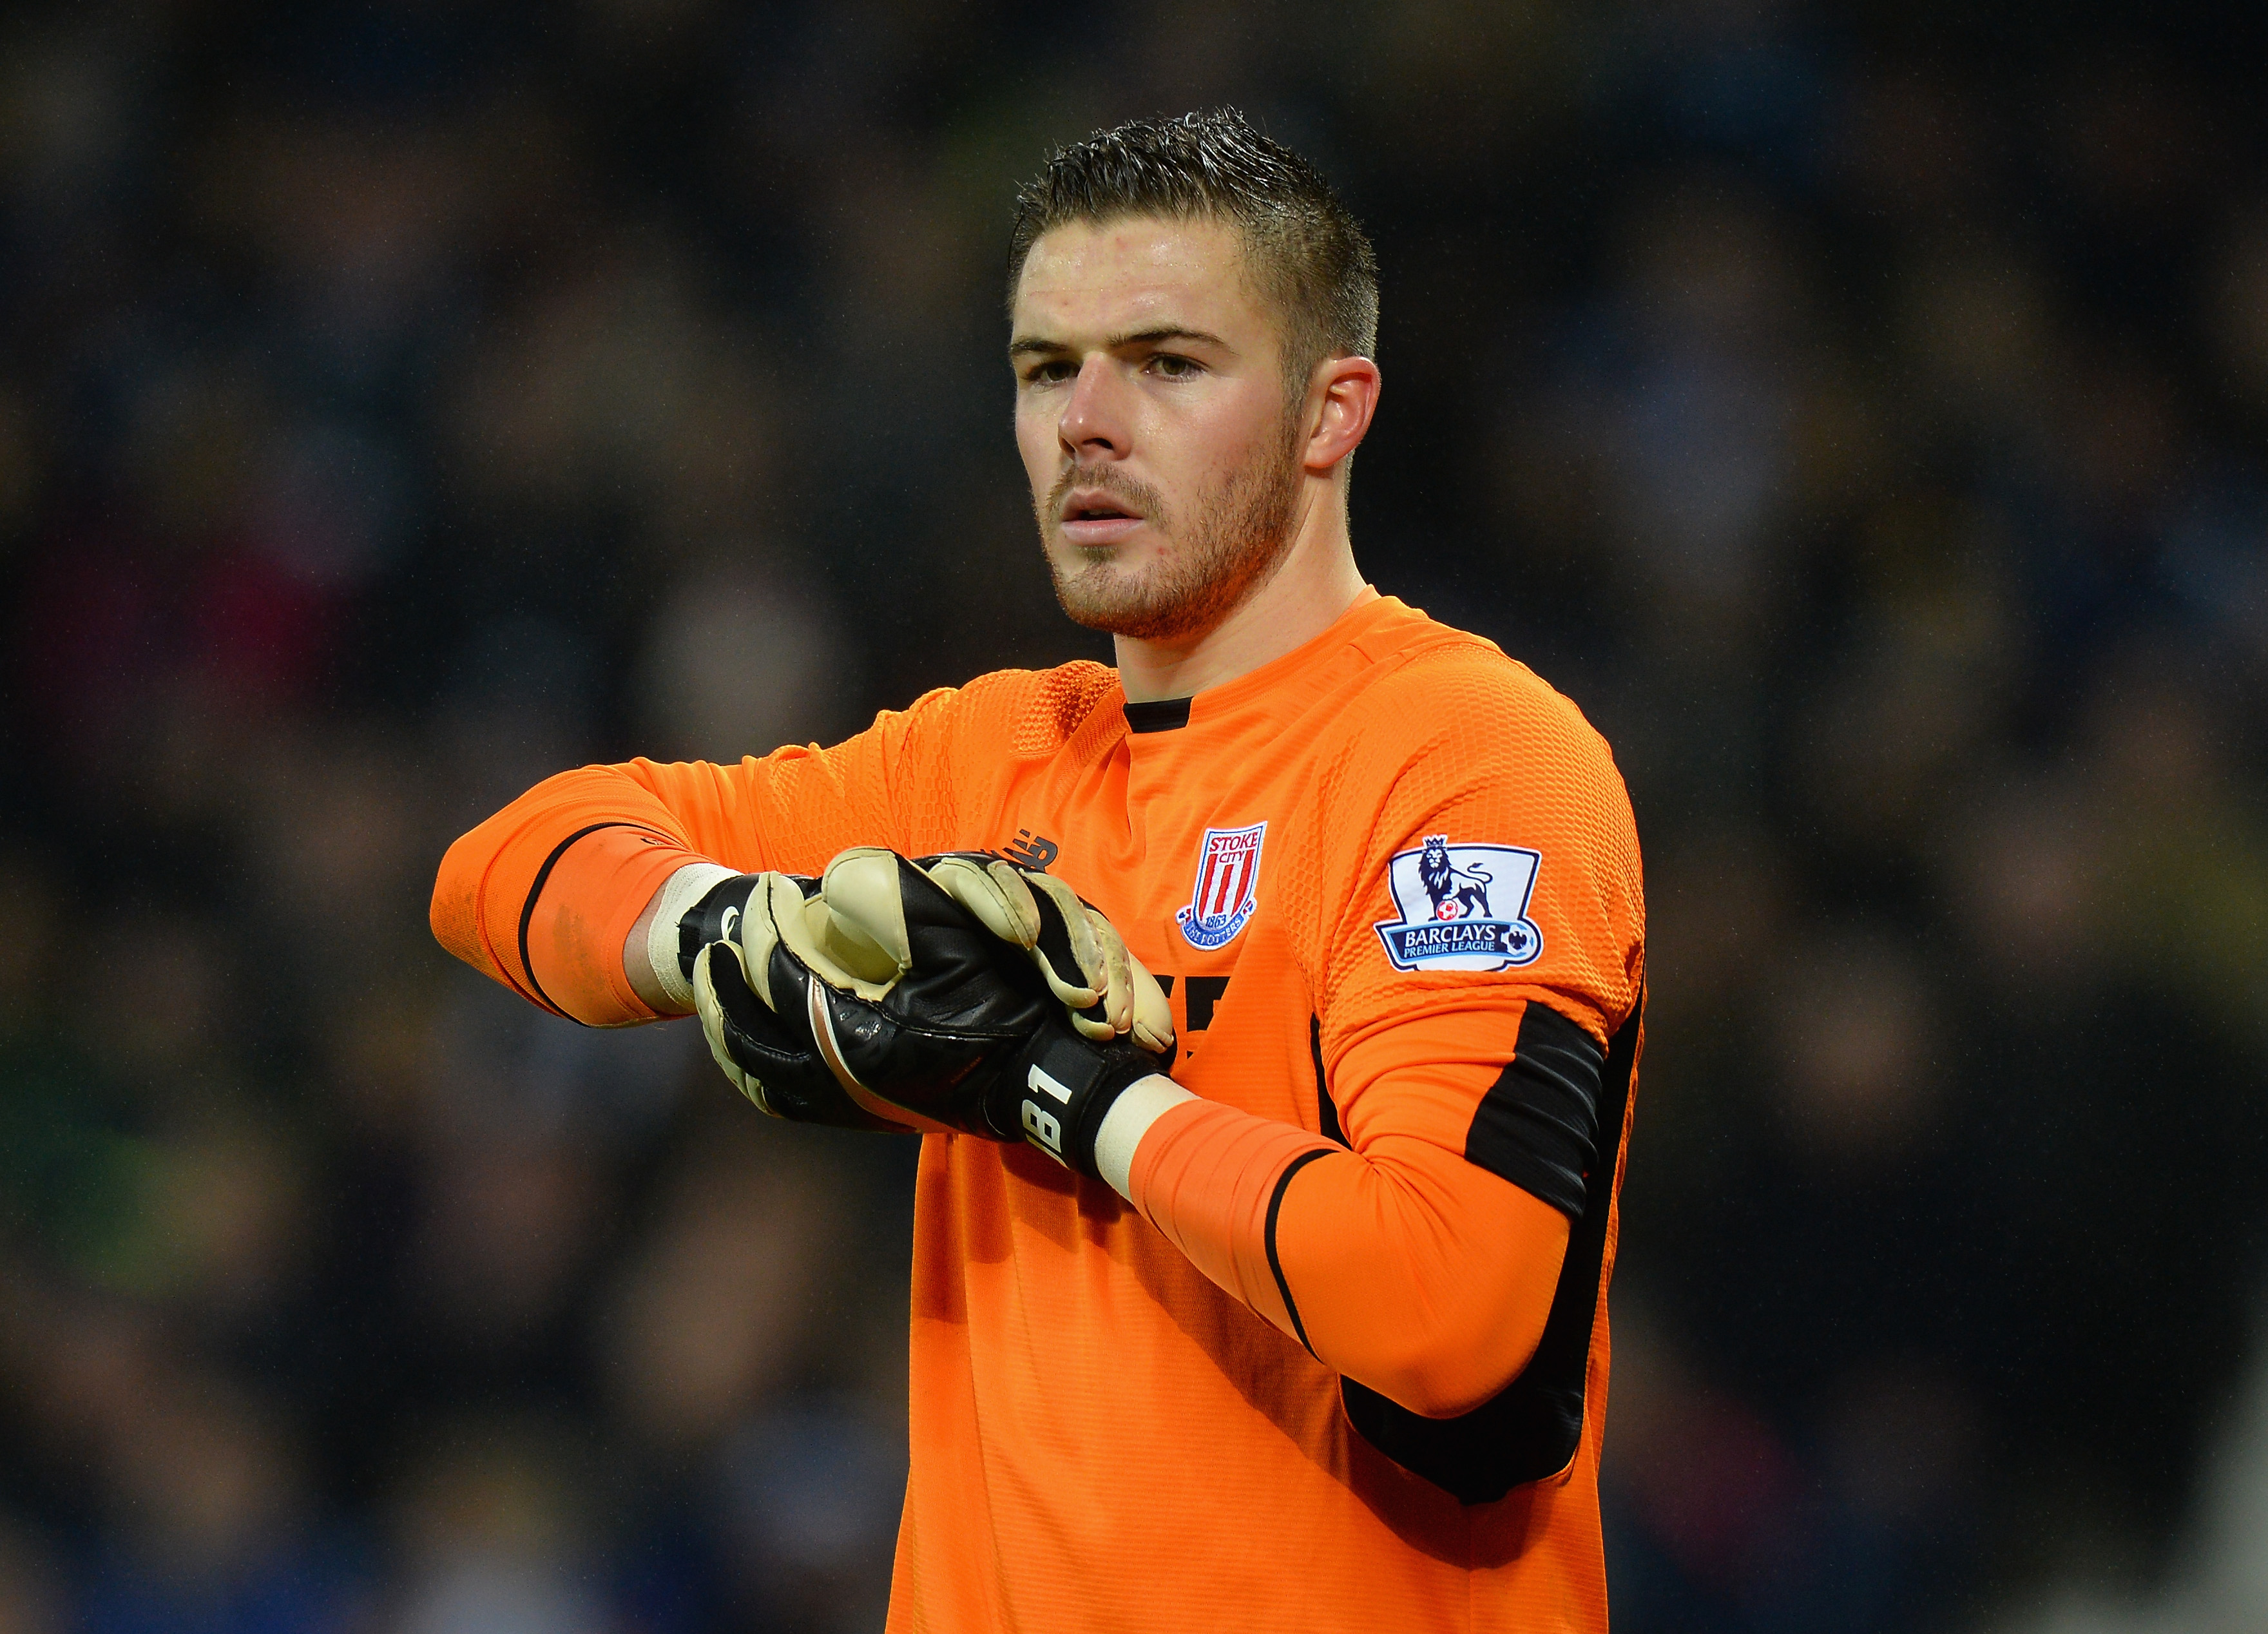 Manchester United ready to sign Jack Butland if David De Gea seals Real Madrid transfer – report